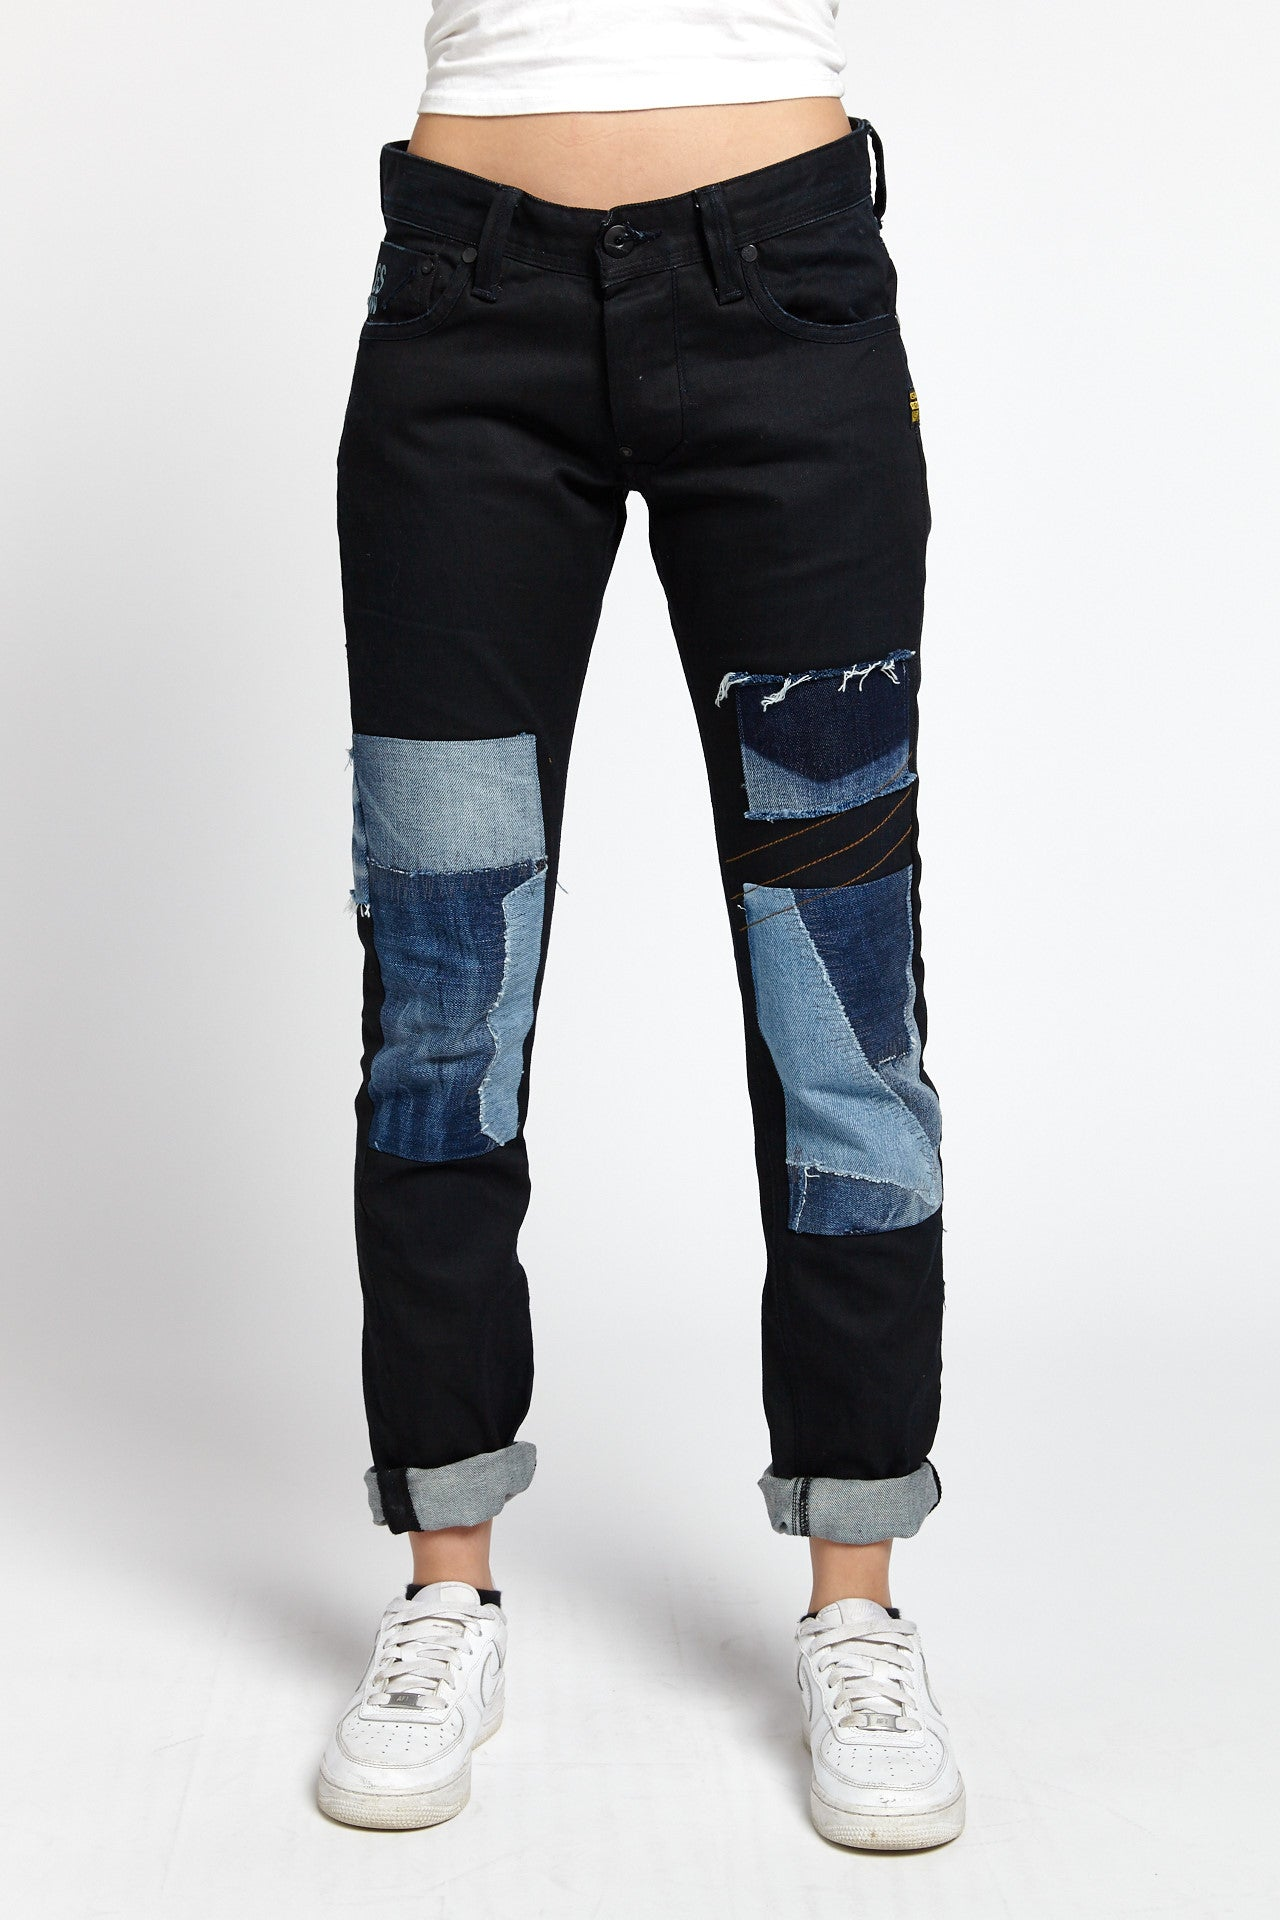 G-STAR RAW RECONSTRUCTED PATCHWORK COTTON BLACK 29 W JEANS-BOTTOMS-Mundane Official-29-BLACK-Mundane Official